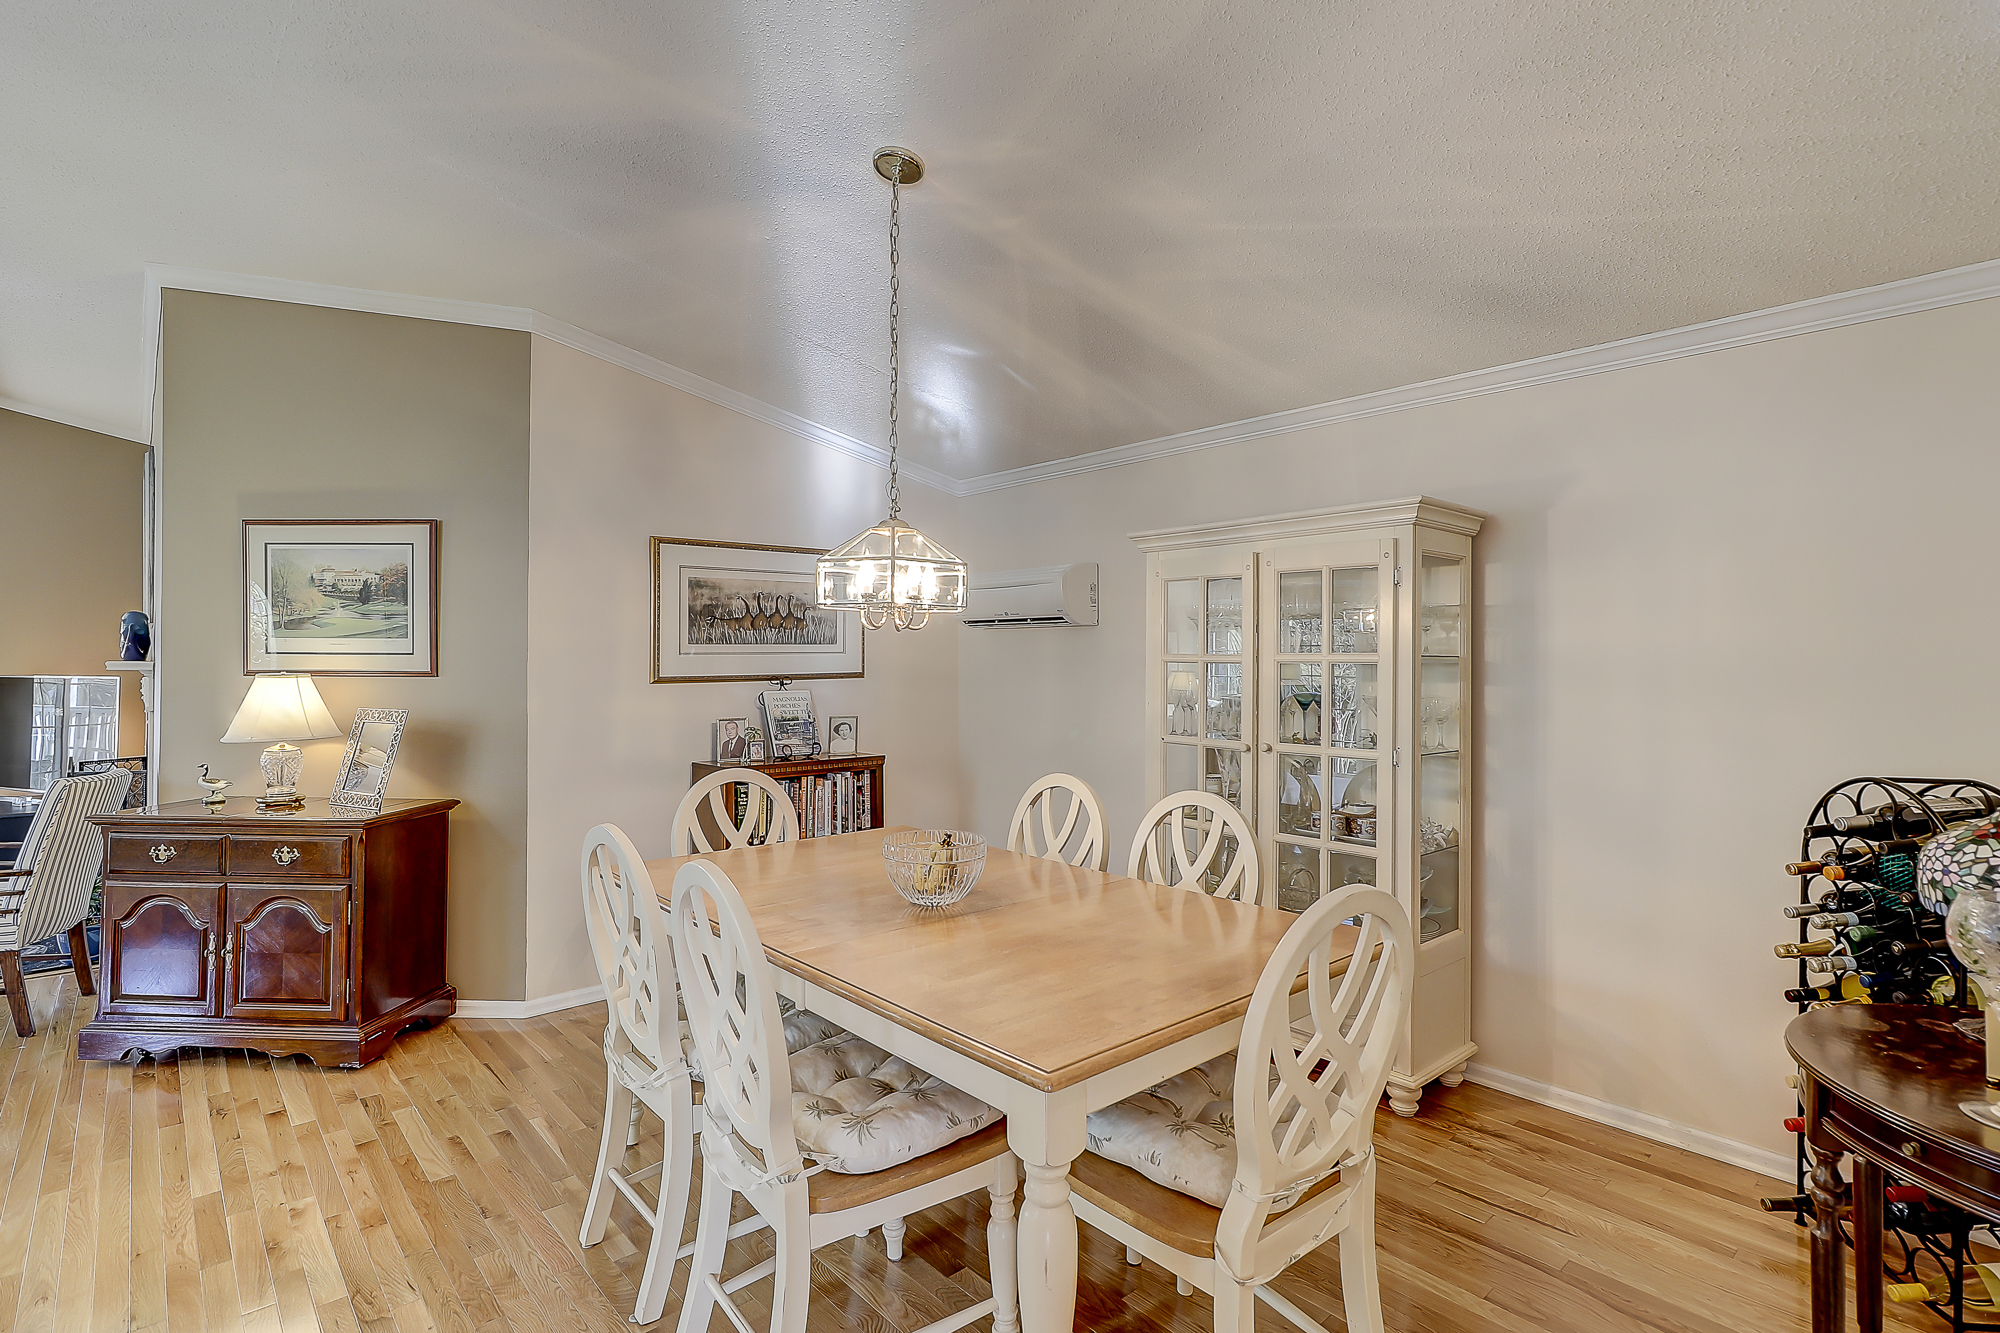 Wood Floors in Great Room, Dining Room and Master Bedroom in this Sawmill Forest Home for Sale